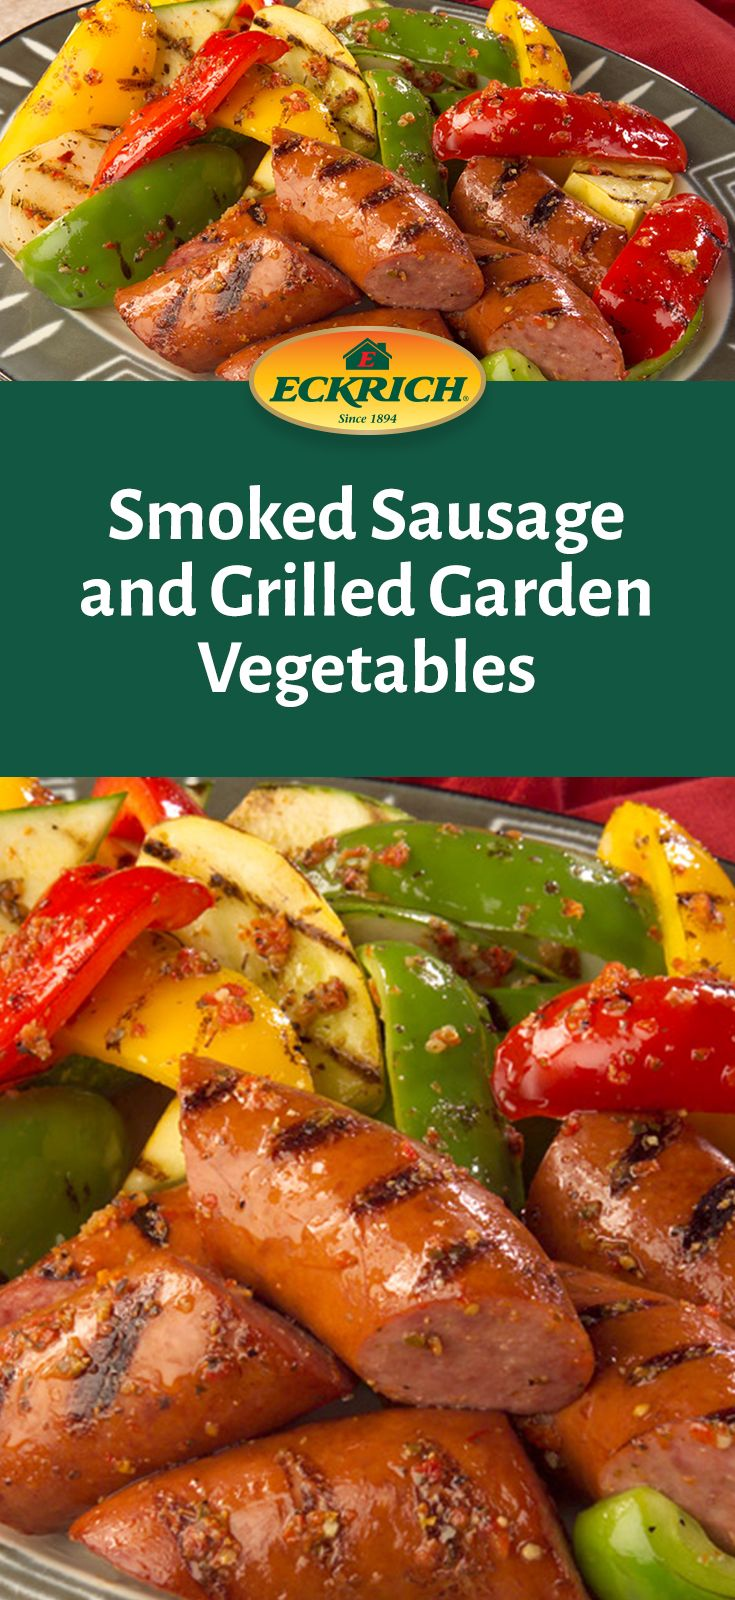 Eckrich Smoked Sausage and Grilled Garden Vegetables is the perfect addition to any summertime party. It's the perfect blend of naturally hardwood smoked flavoring with grilled bell peppers, summer squash, zucchini and onions. #4thofJuly #IndependenceDay #PartyTips #SmokedSausage #Vegetables #GrillingSeason #Recipe